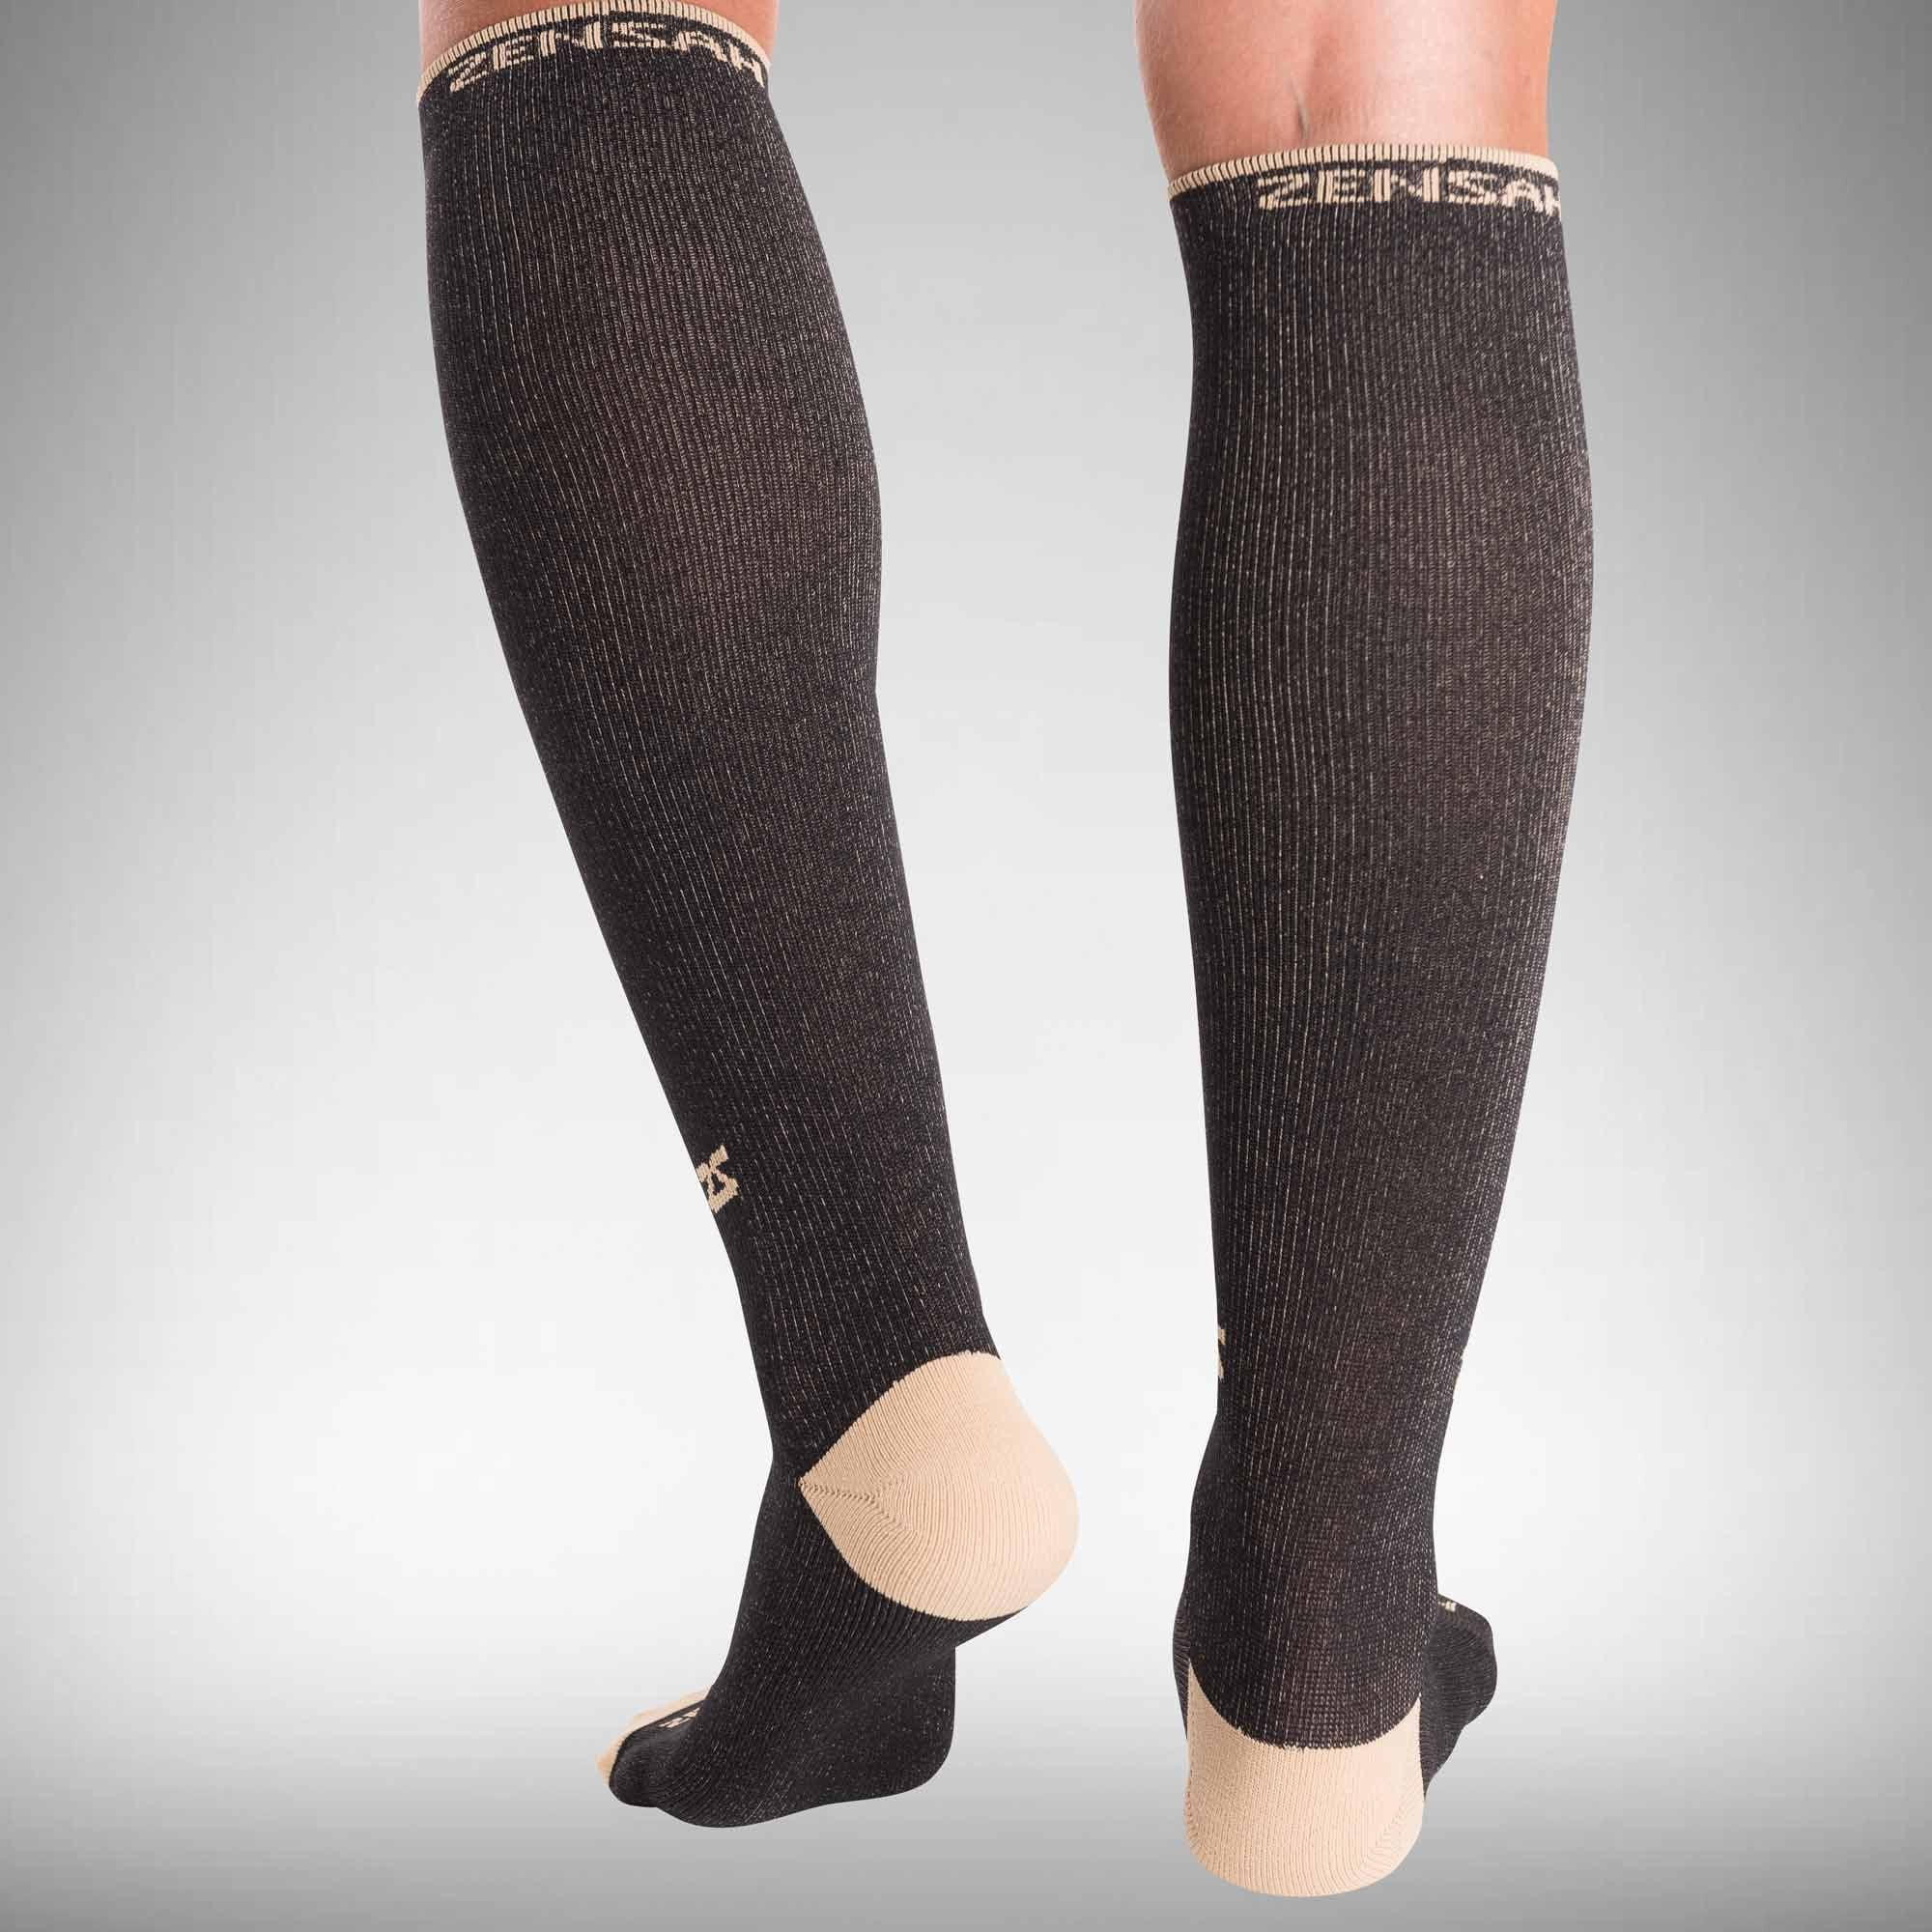 eb8836776a11f4 Copper Compression Socks - Graduated Stockings | Zensah